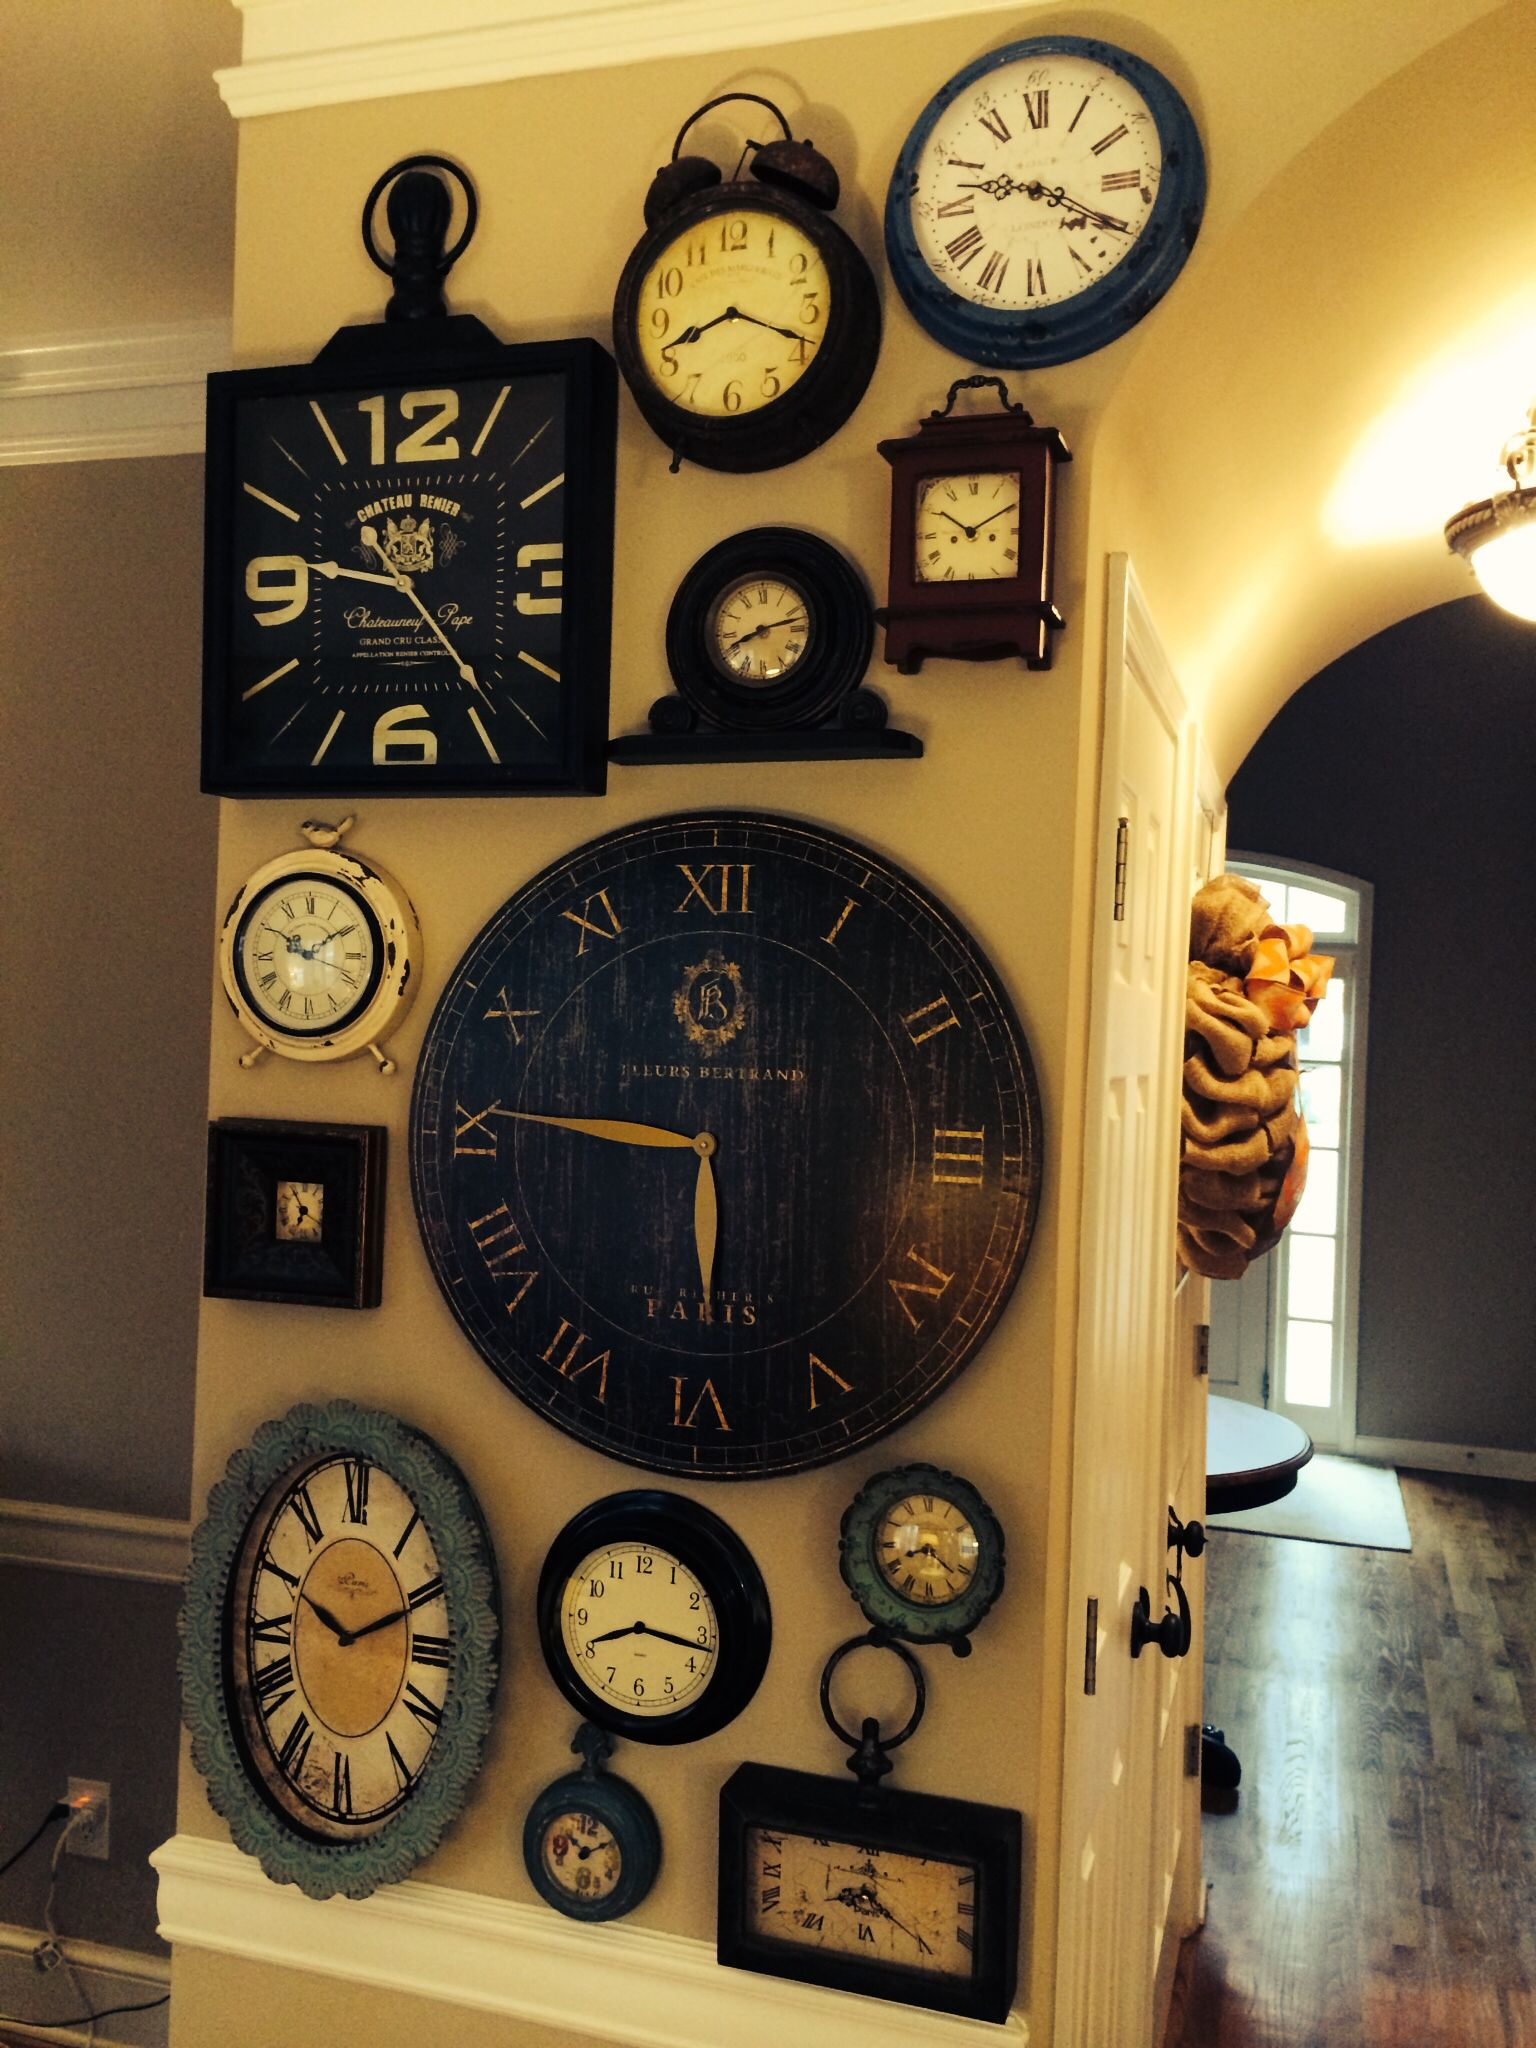 Decorative Clocks For Walls impressive collection of large wall clocks decor ideas that you